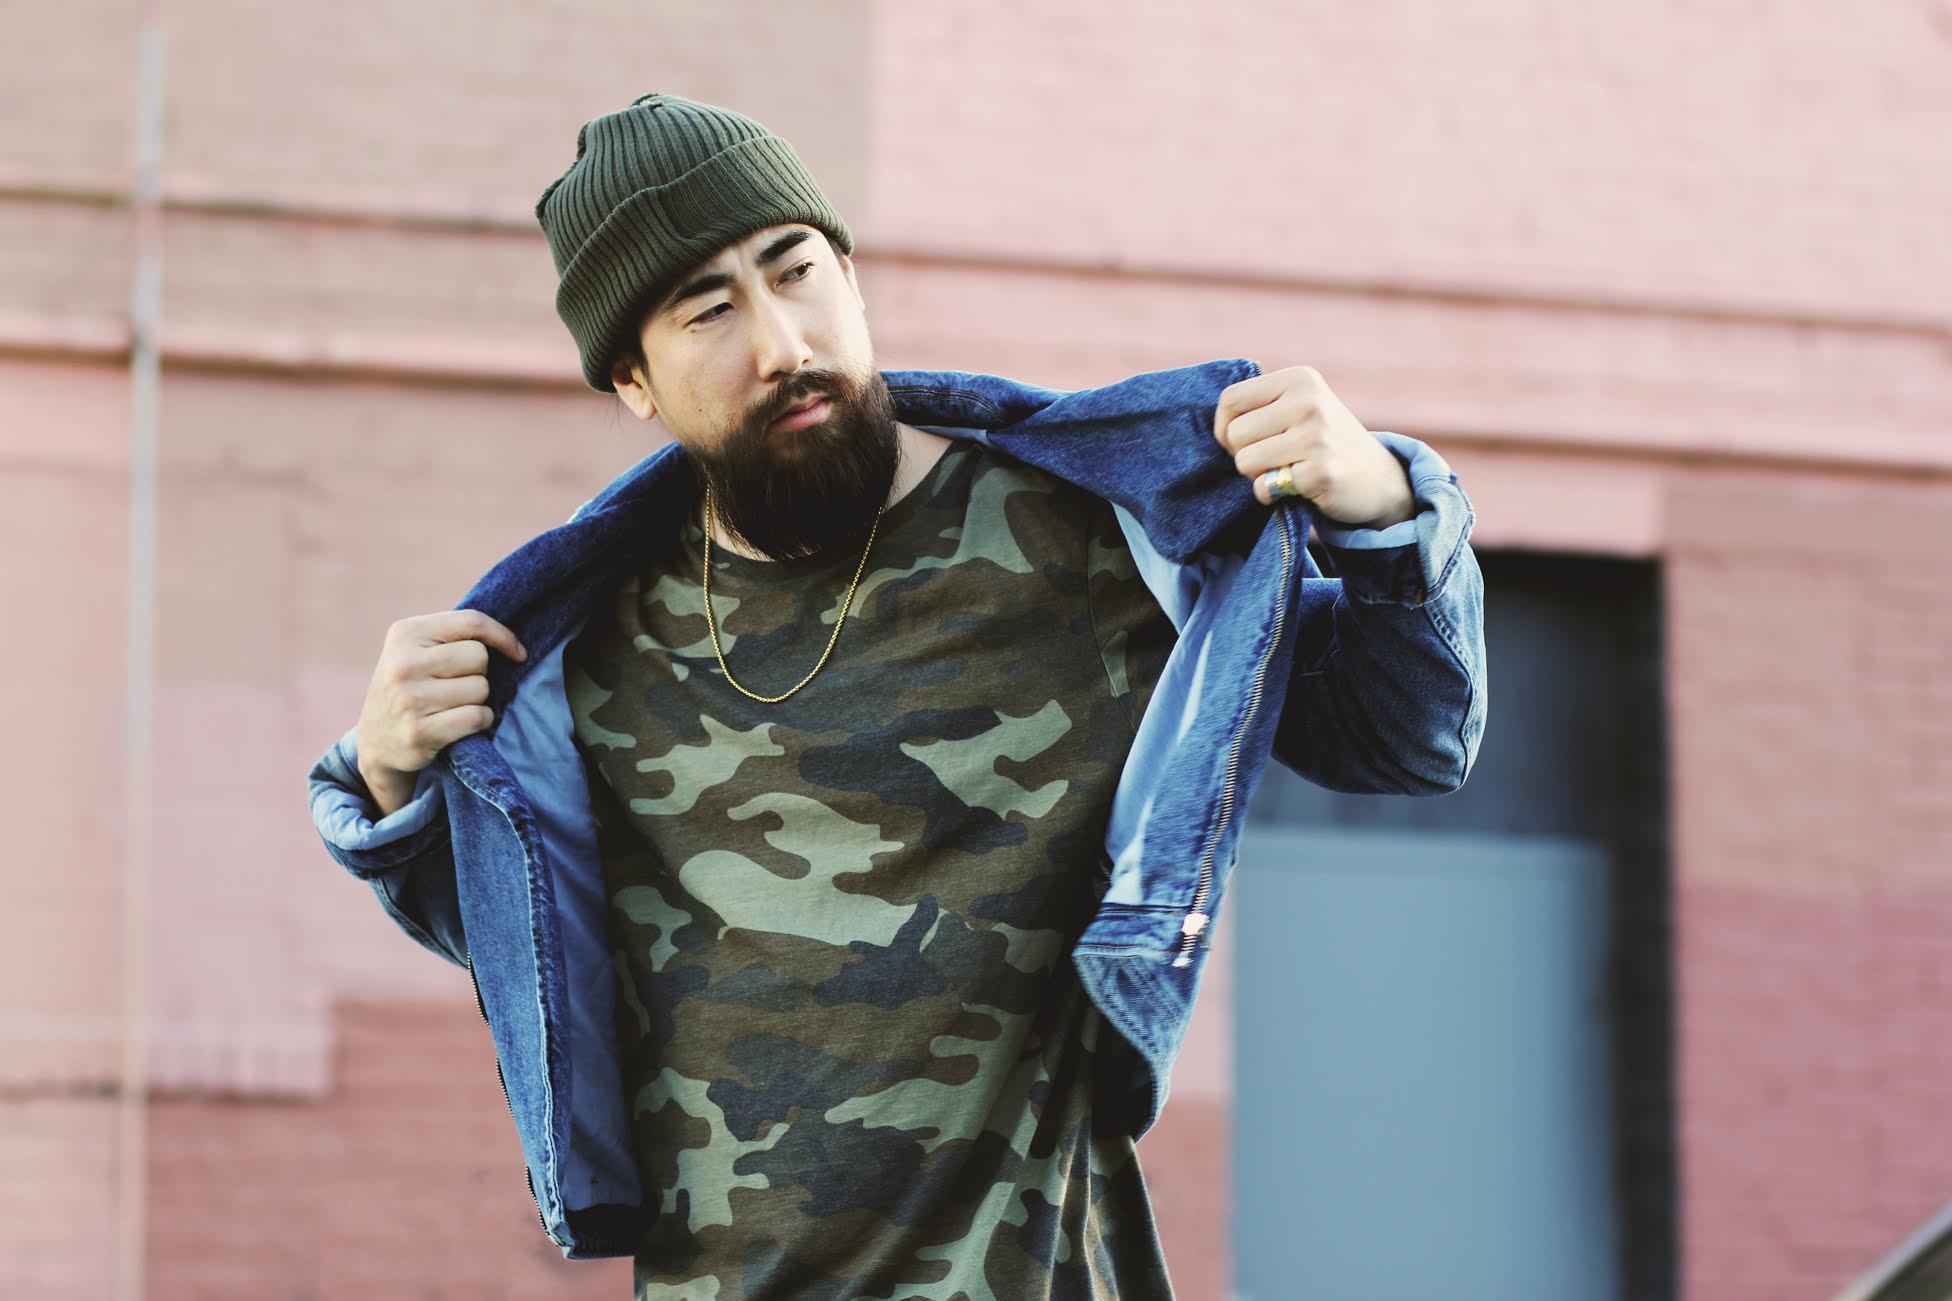 justfeng ryan feng ootdmen menstyle streestyle sexy asian beard